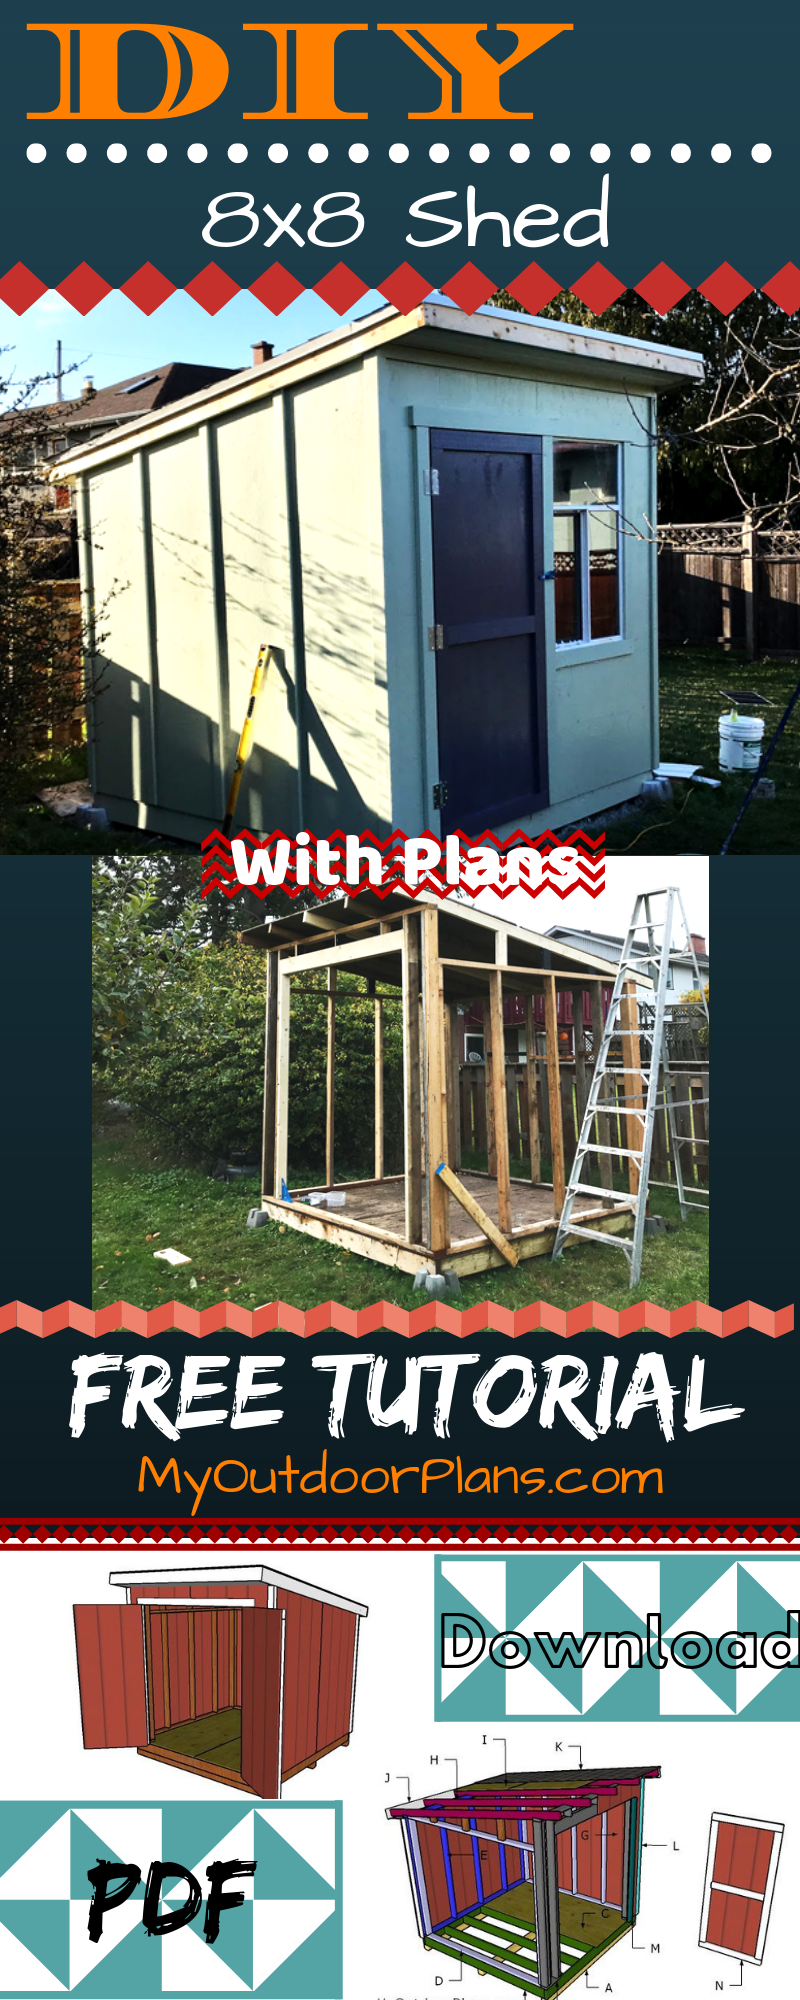 8x8 Bedroom Design: Easy To Follow Plans For You To Build A Super Sturdy 8x8